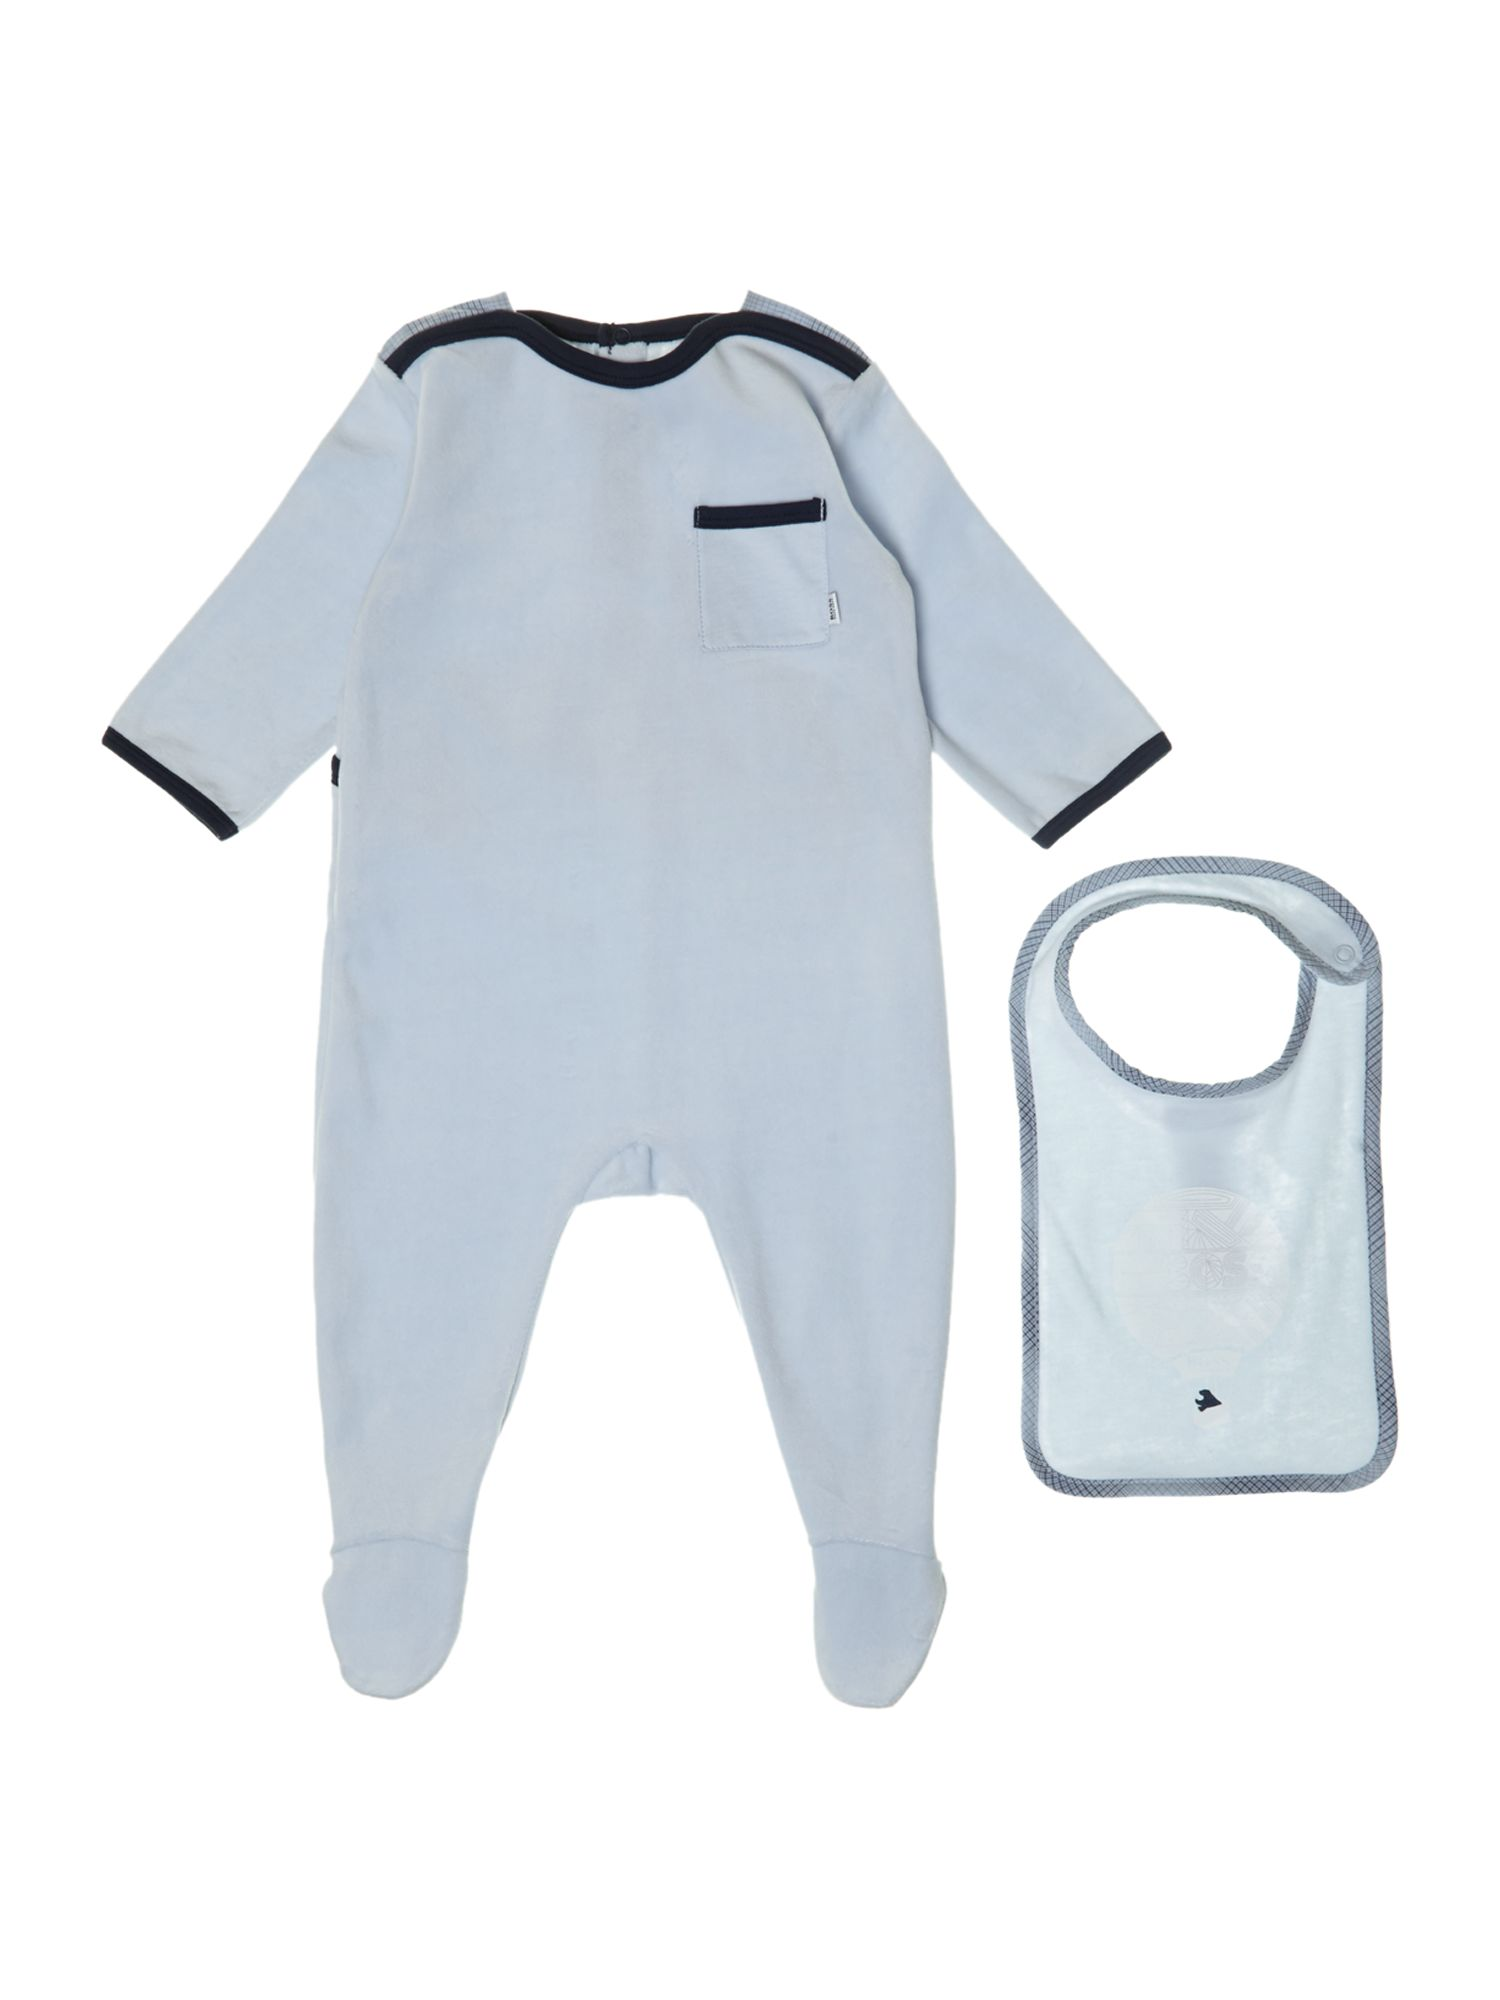 Boys all in one and jersey bib set